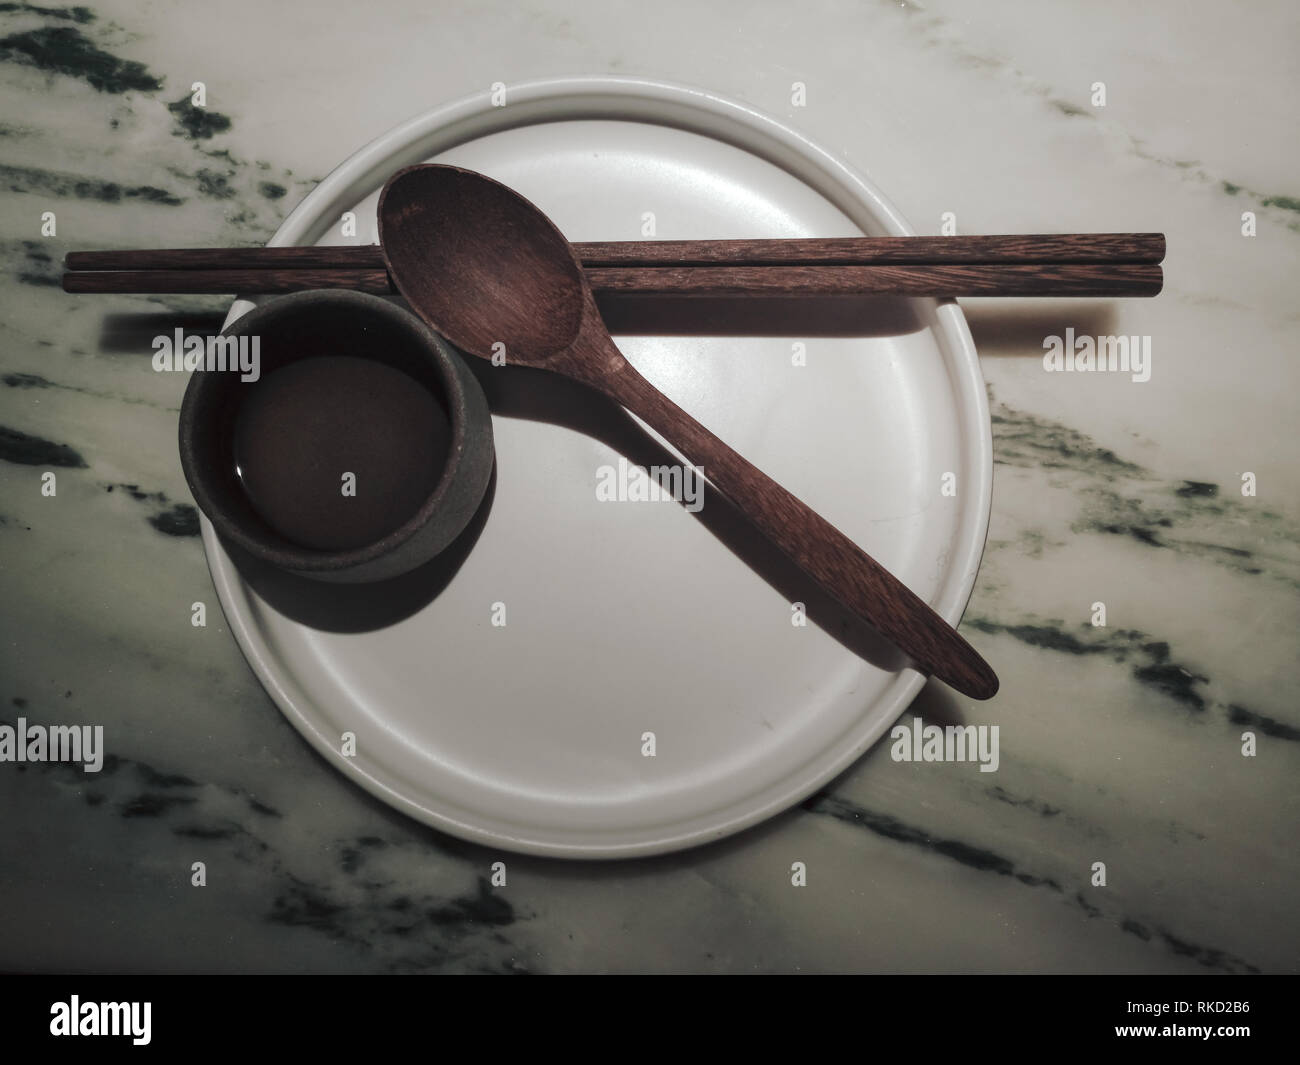 Chinese Traditional Tableware Stock Photo